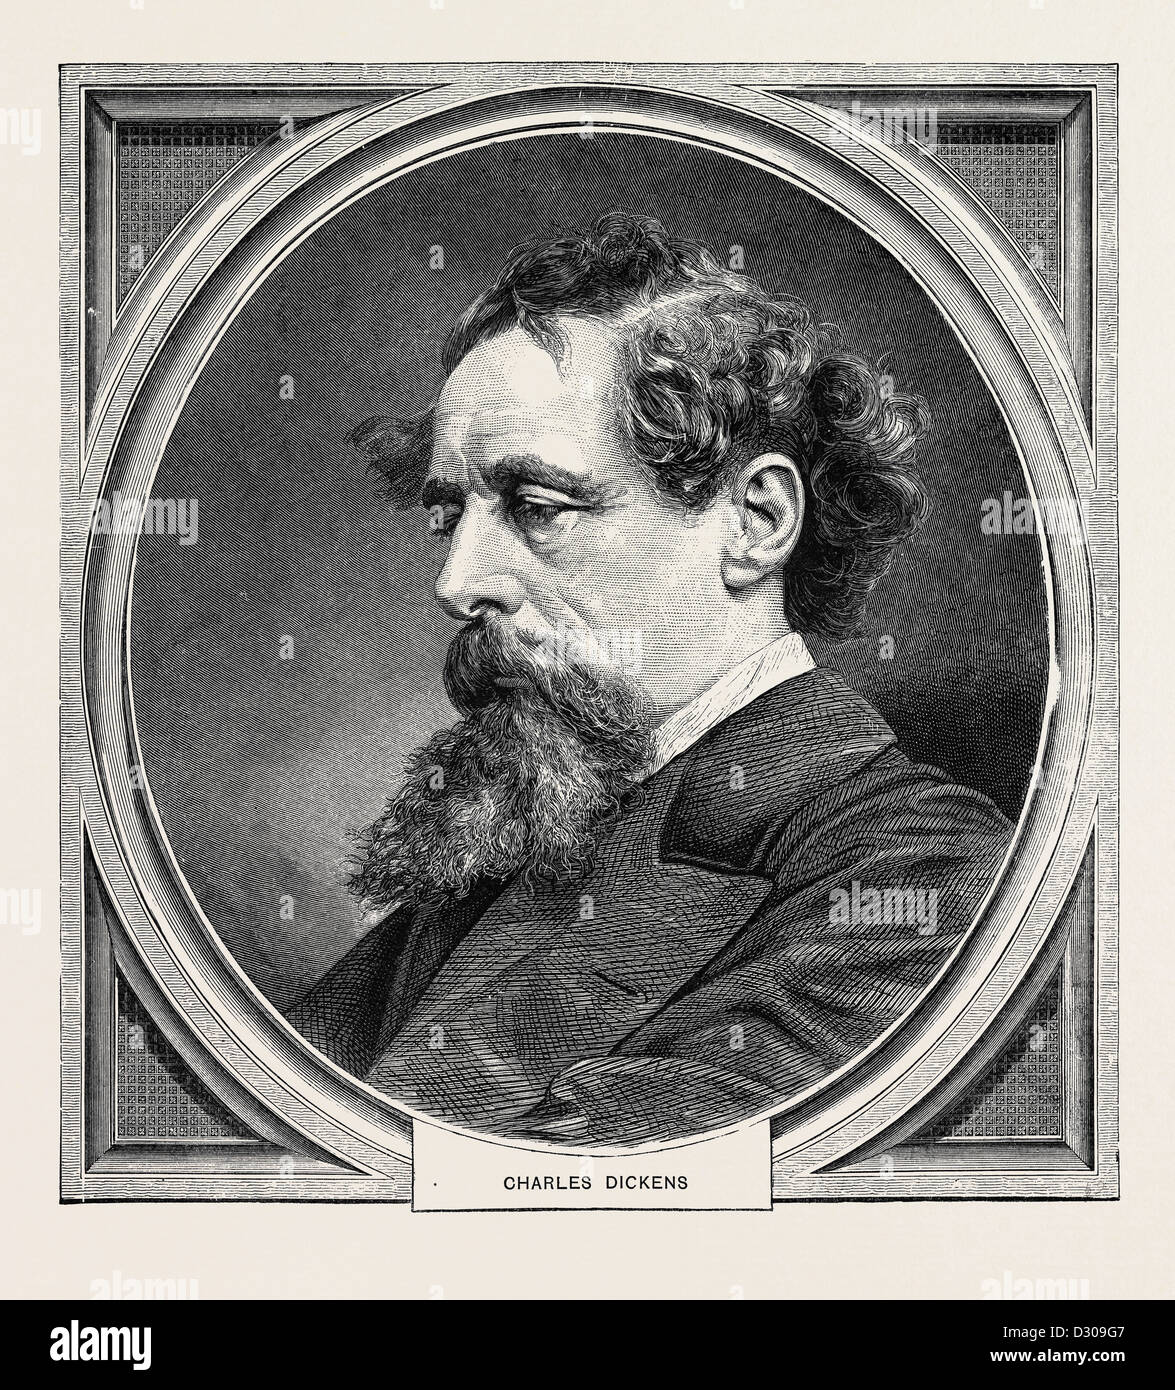 CHARLES DICKENS, BORN AT PORTSMOUTH, 7 FEBRUARY, 1812; DIED AT GAD'S HILL, KENT, 9 JUNE, 1870 Stock Photo